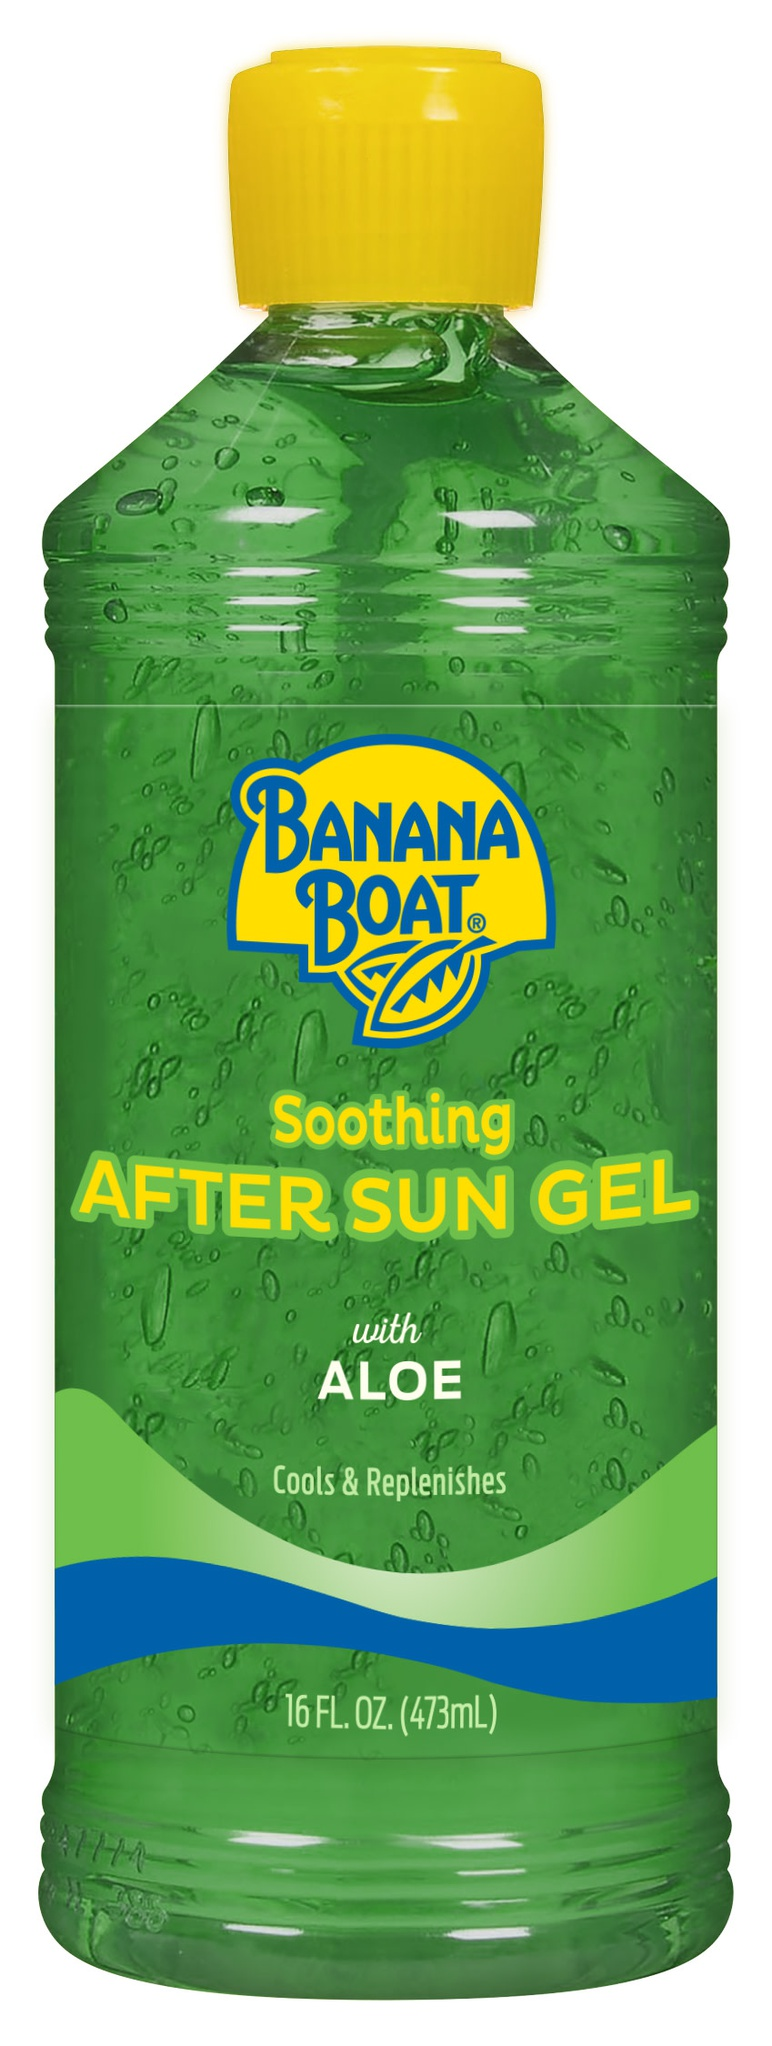 Banana Boat Soothing After Sun Gel With Aloe